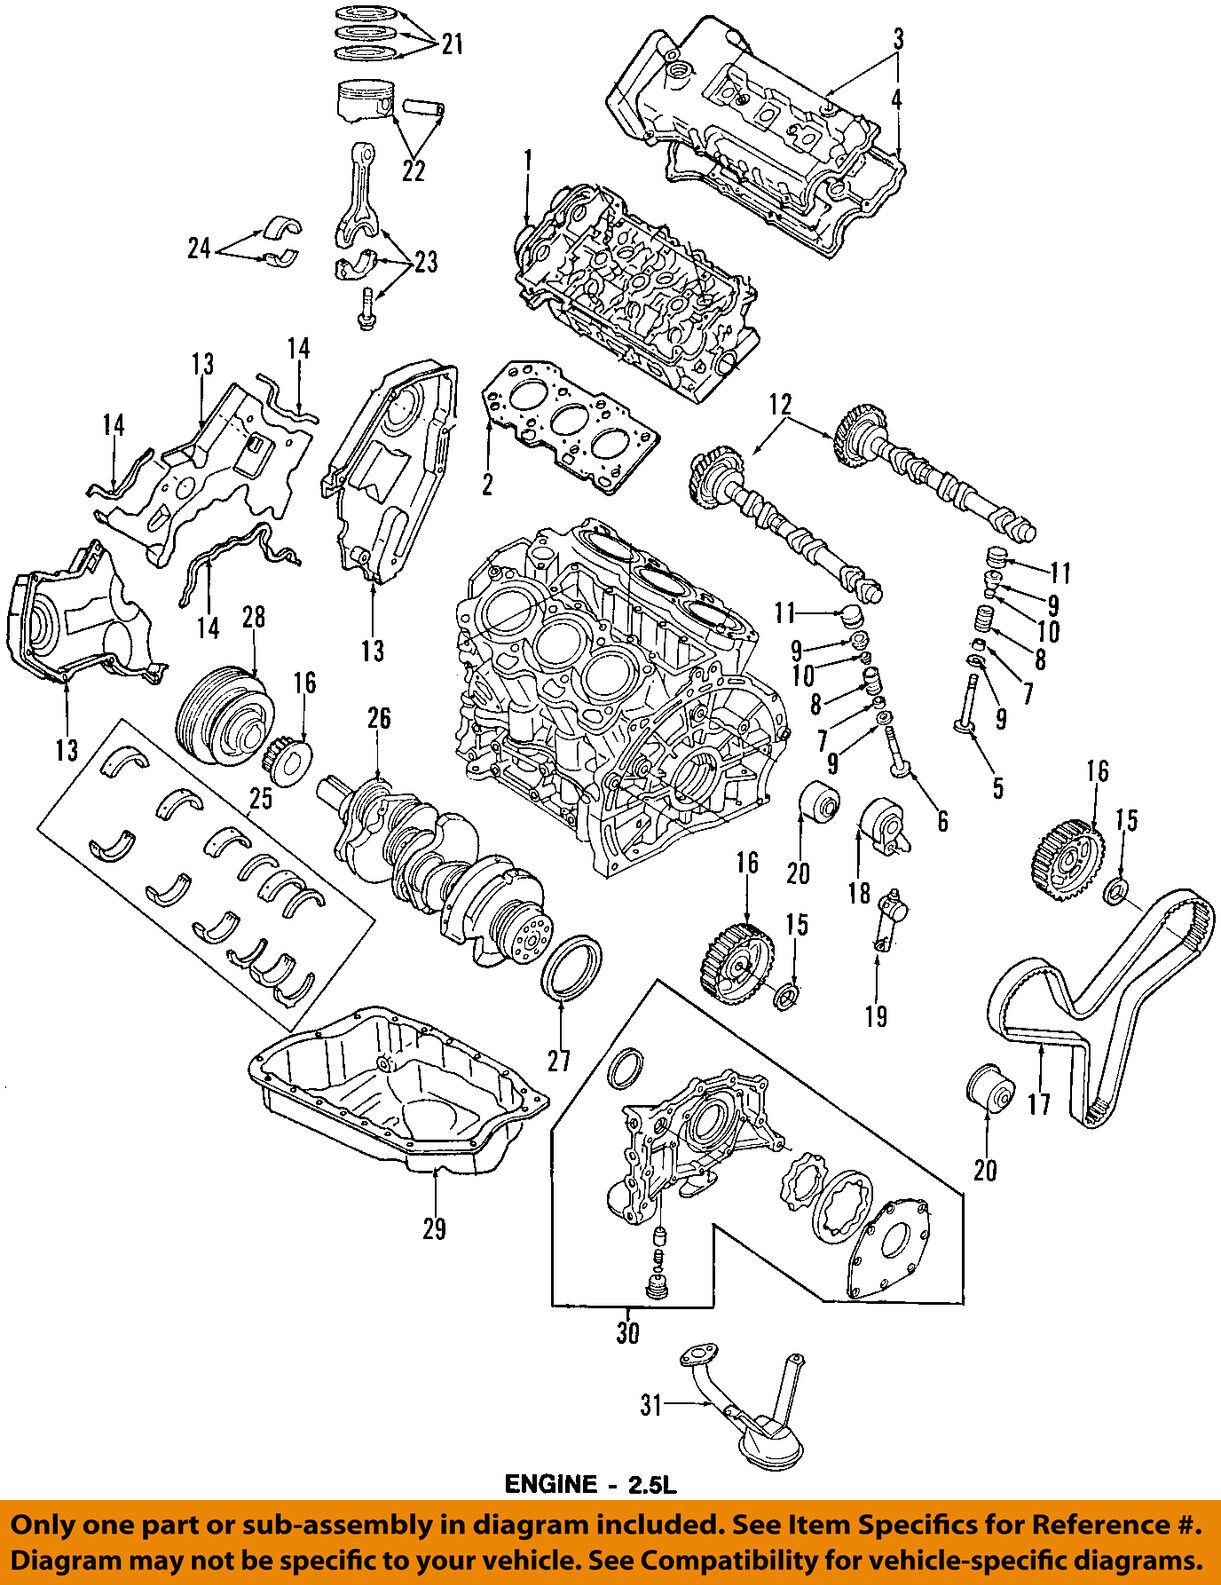 Ford Oem 95 97 Probe Engine Crankshaft Crank Main Bearing F52z6333aa 2 5l Diagram Norton Secured Powered By Verisign